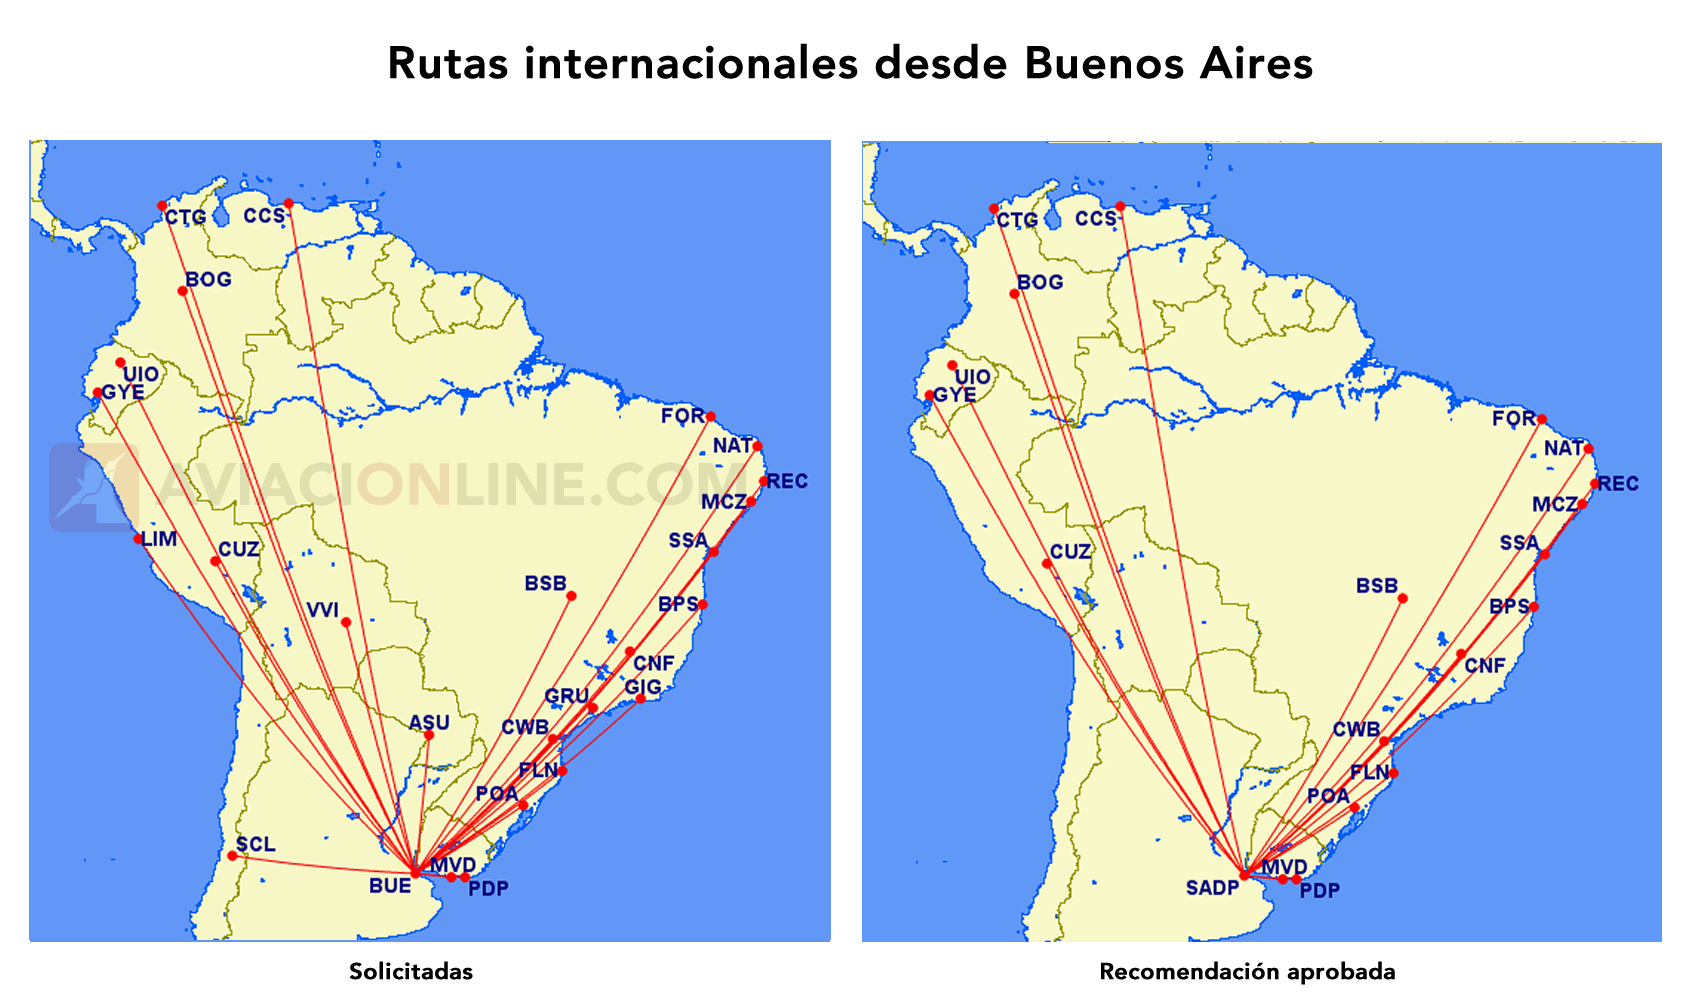 FLYBONDI - RUTAS INT BS AS SOL VS APR